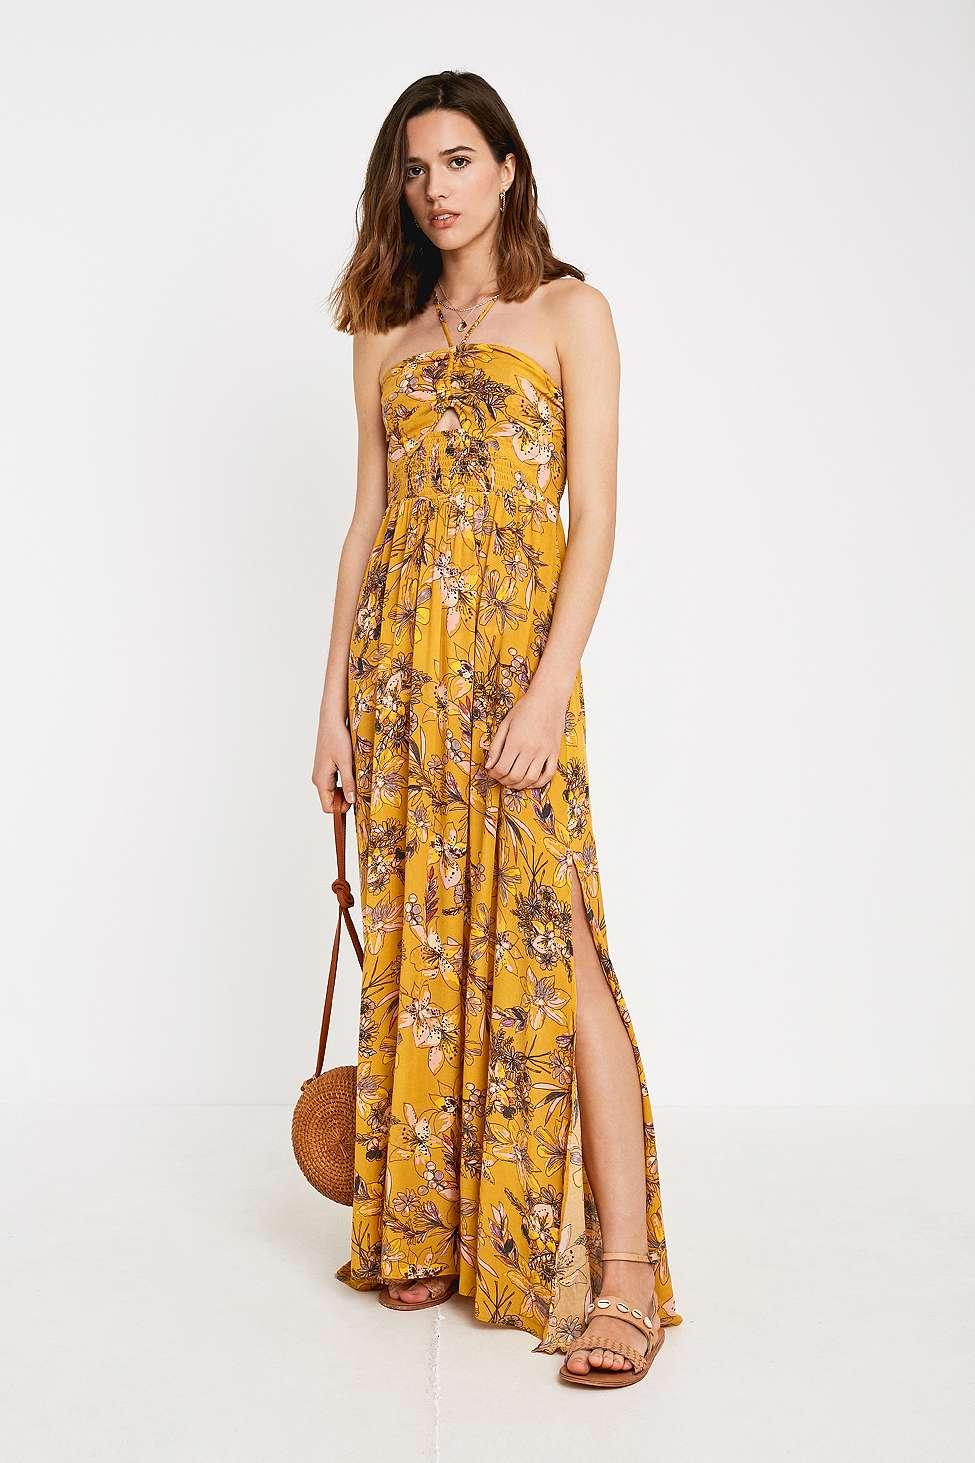 c0660d709b Free People One Step Ahead Yellow Floral Maxi Dress - Womens S in ...